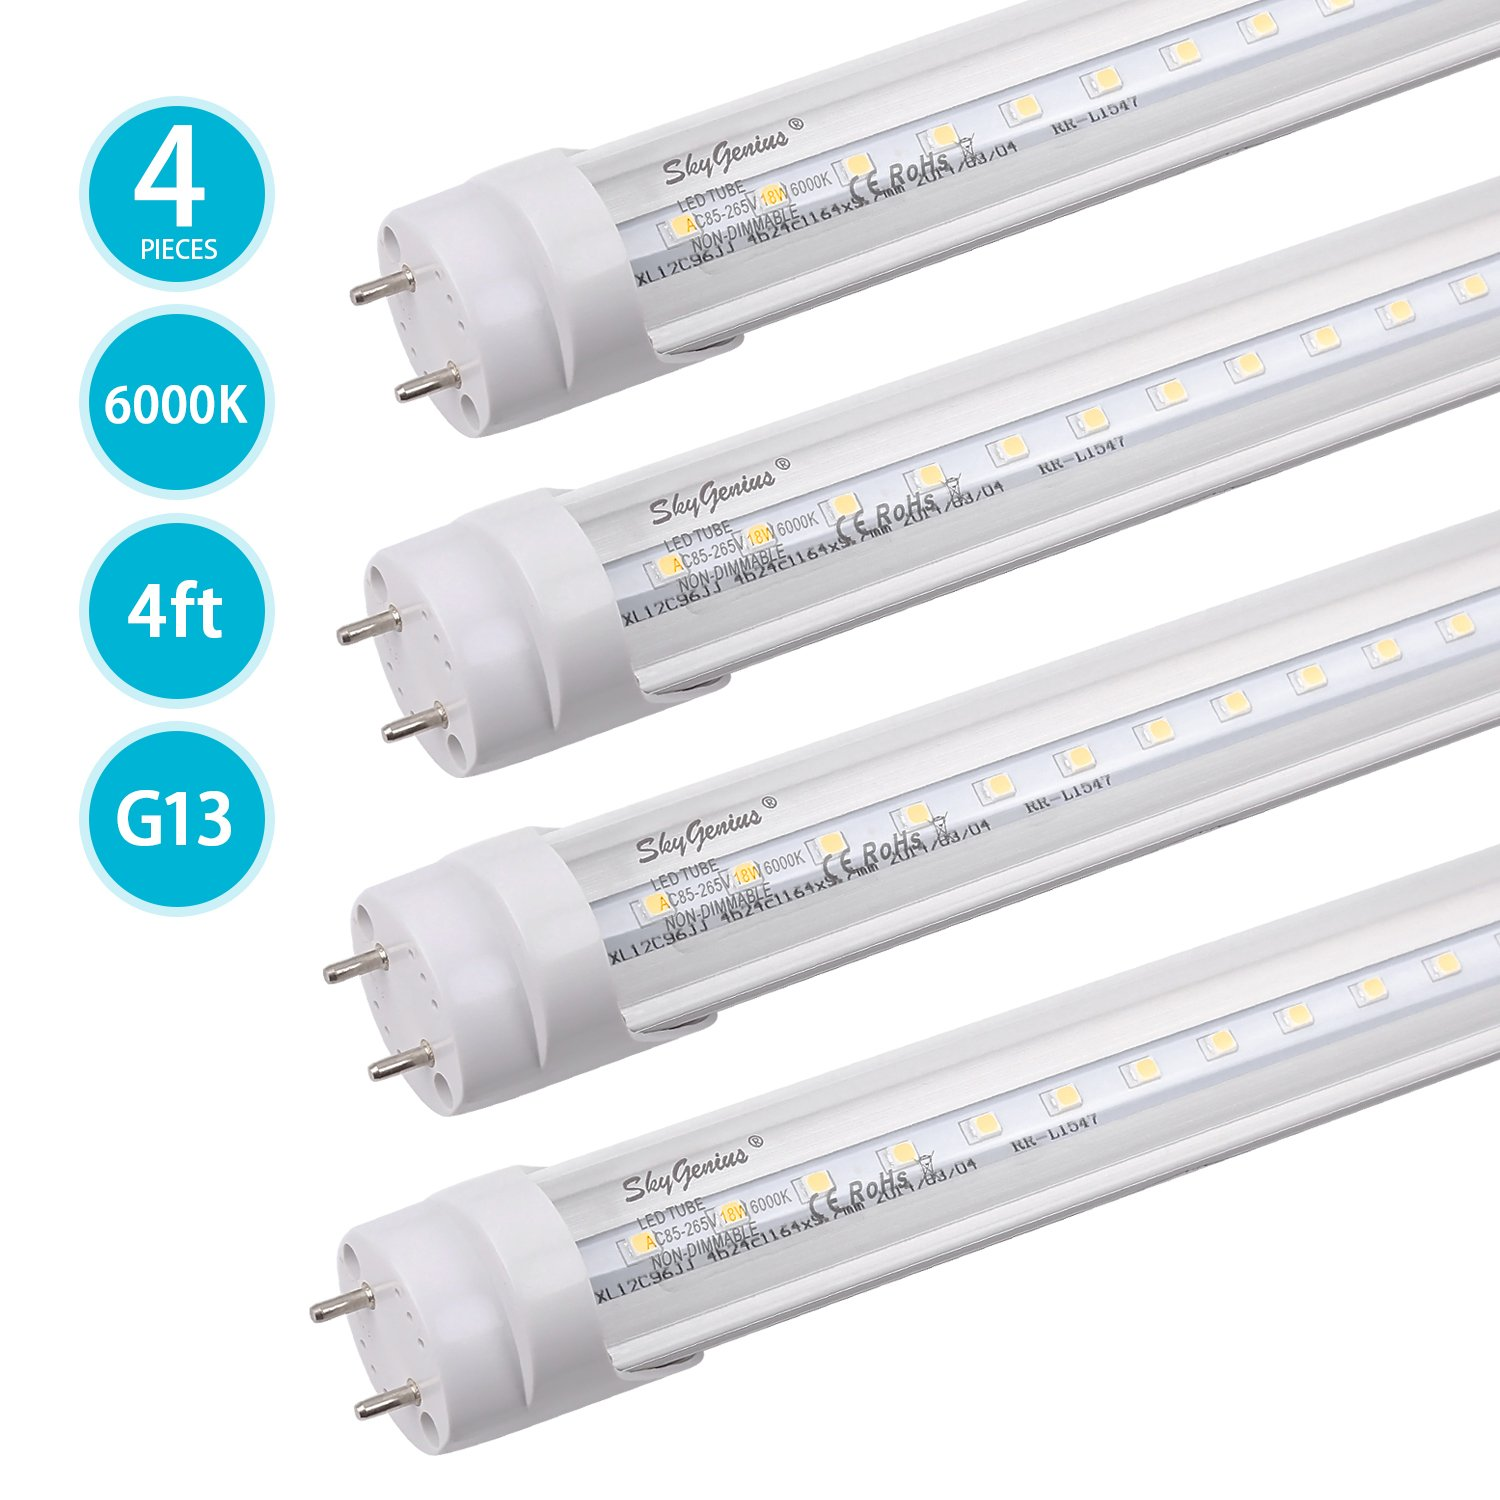 T8 LED Tube Light, Dual-End Powered 4ft LED Bulbs, 18W 2000Lm, 6000K Cold White, LED Fluorescent Tube Replacement for G13 Fixtures(4 Pack)